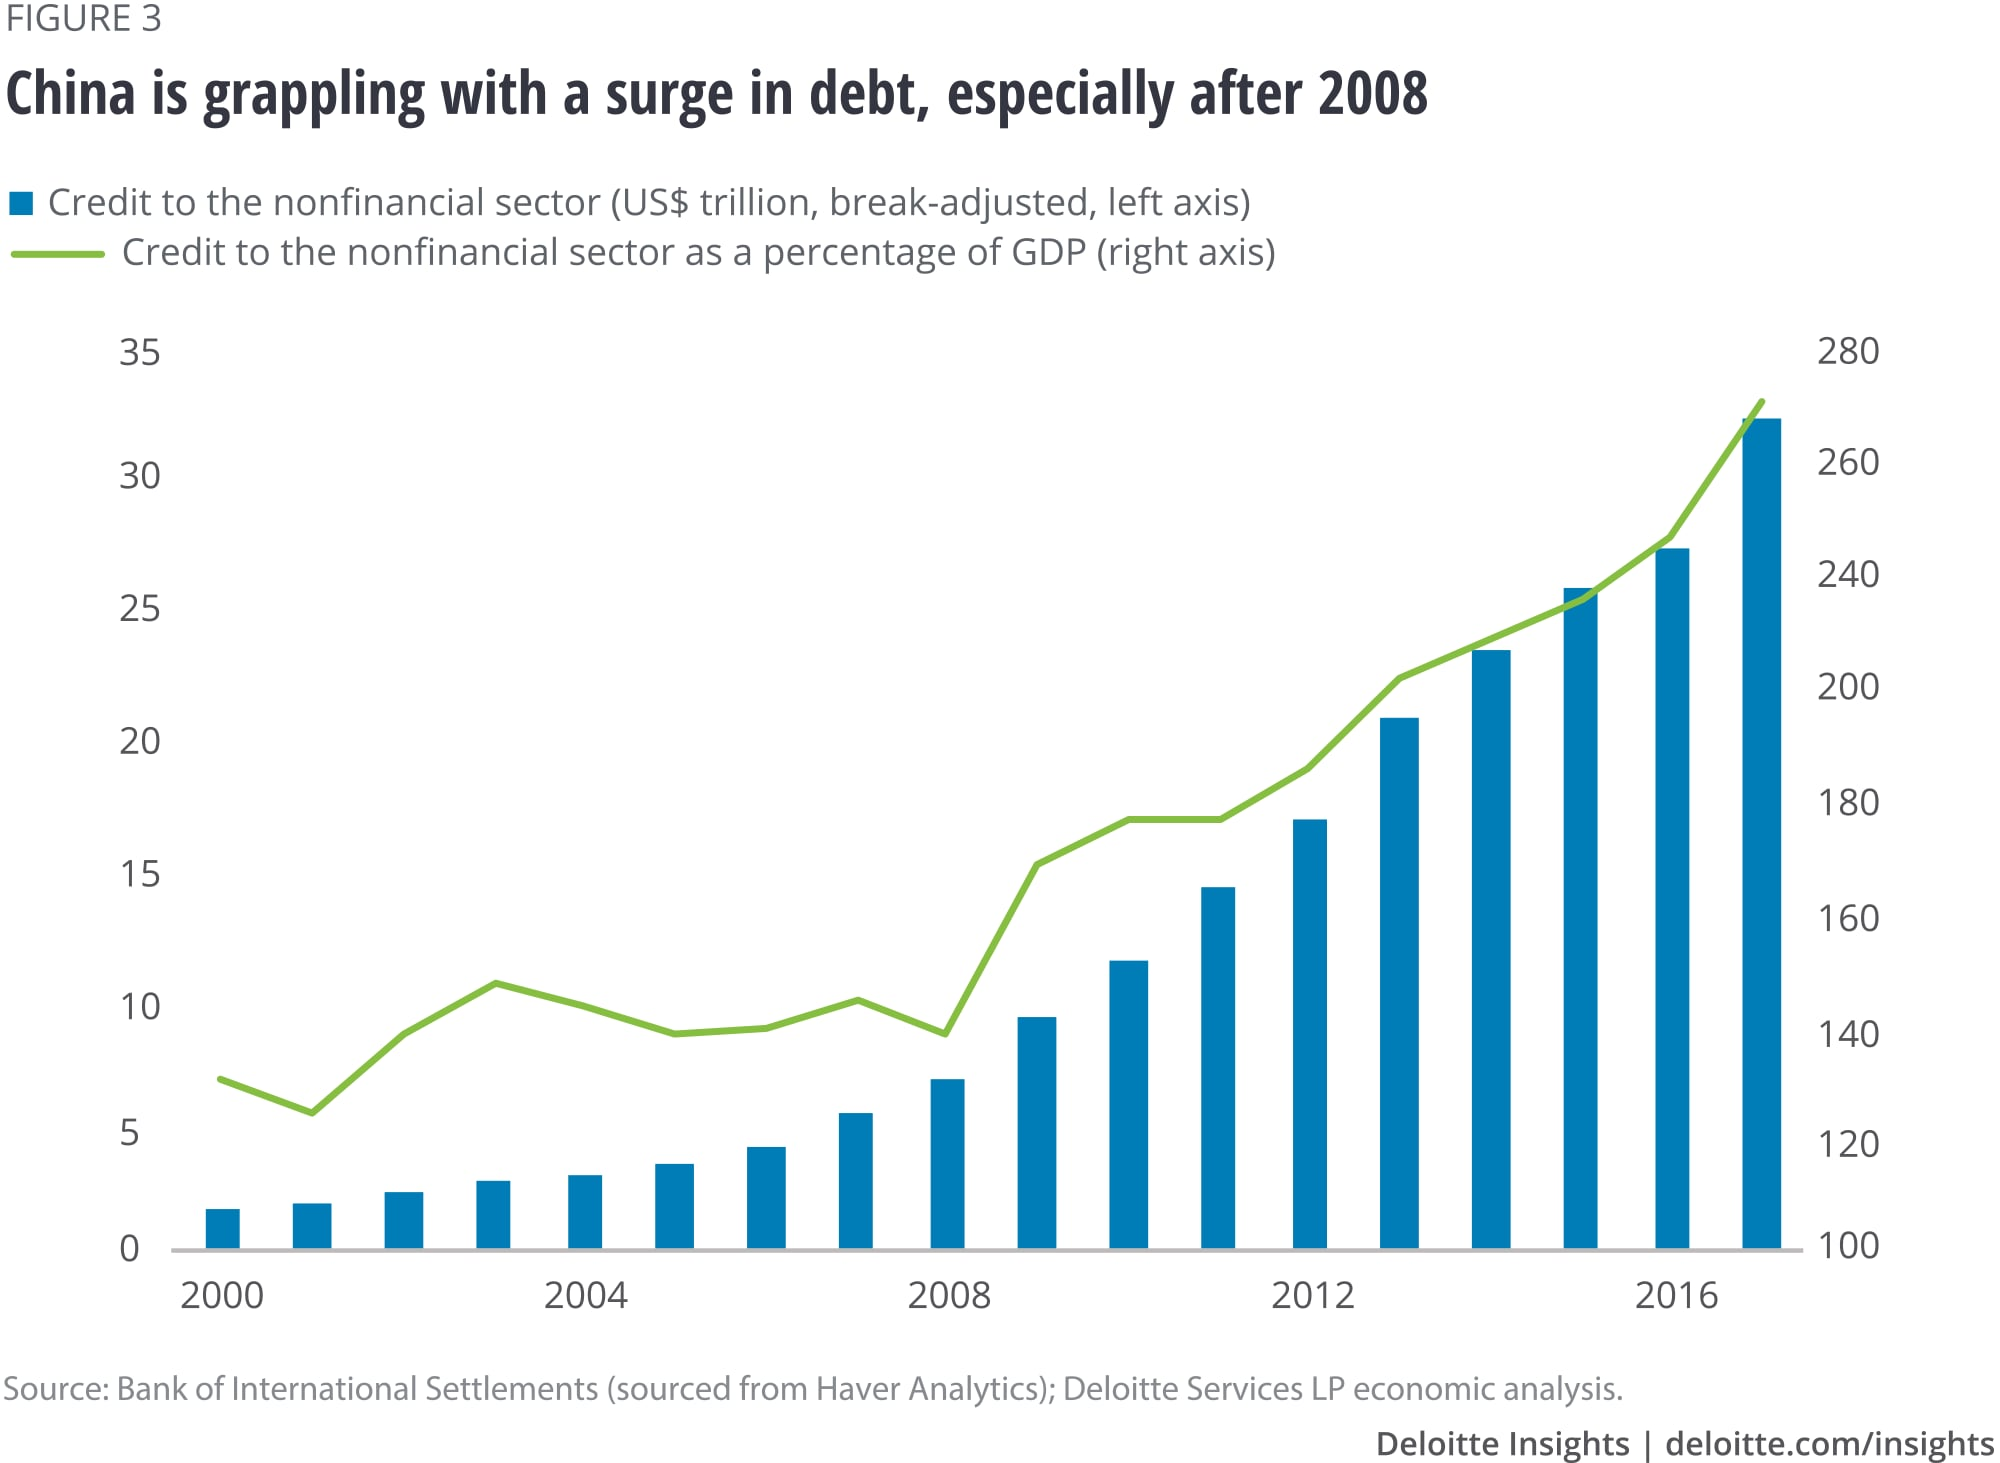 China is grappling with a surge in debt, especially after 2008